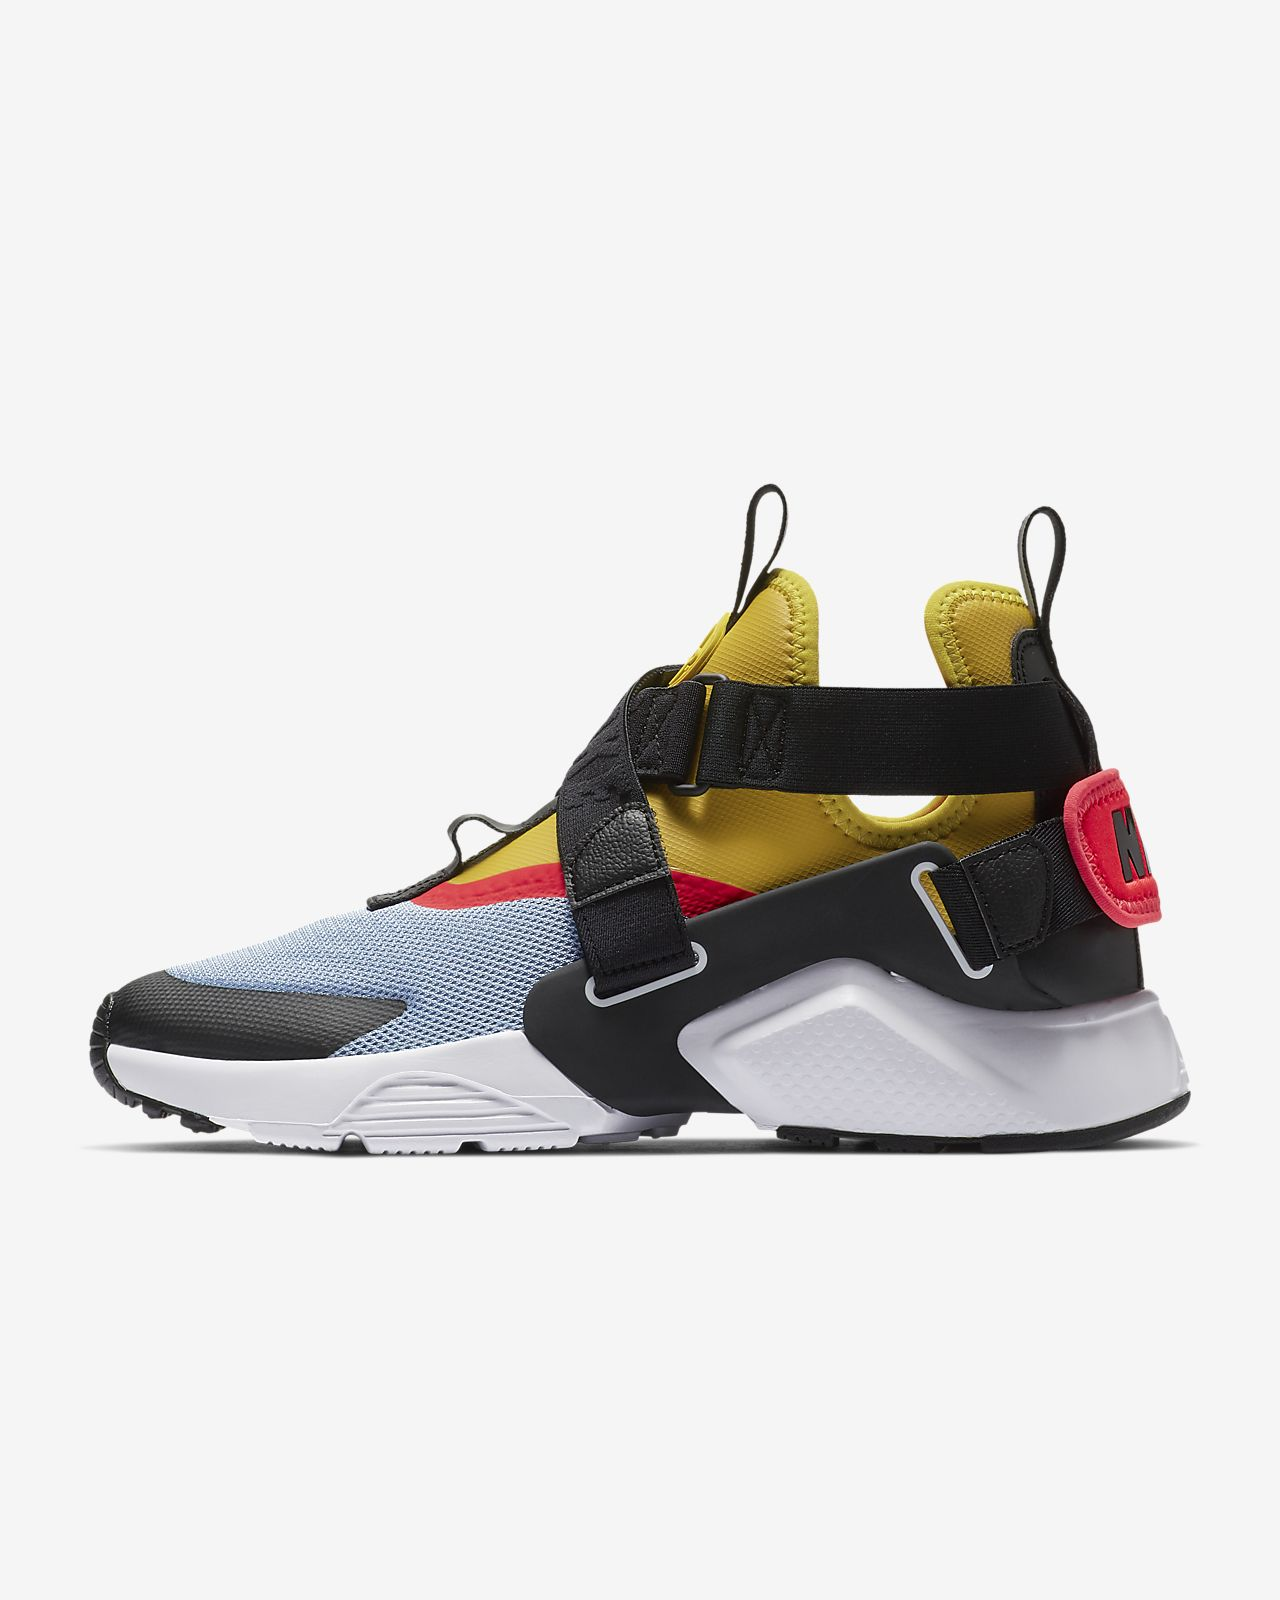 791eb800ceb6 Nike Air Huarache City Women s Shoe. Nike.com